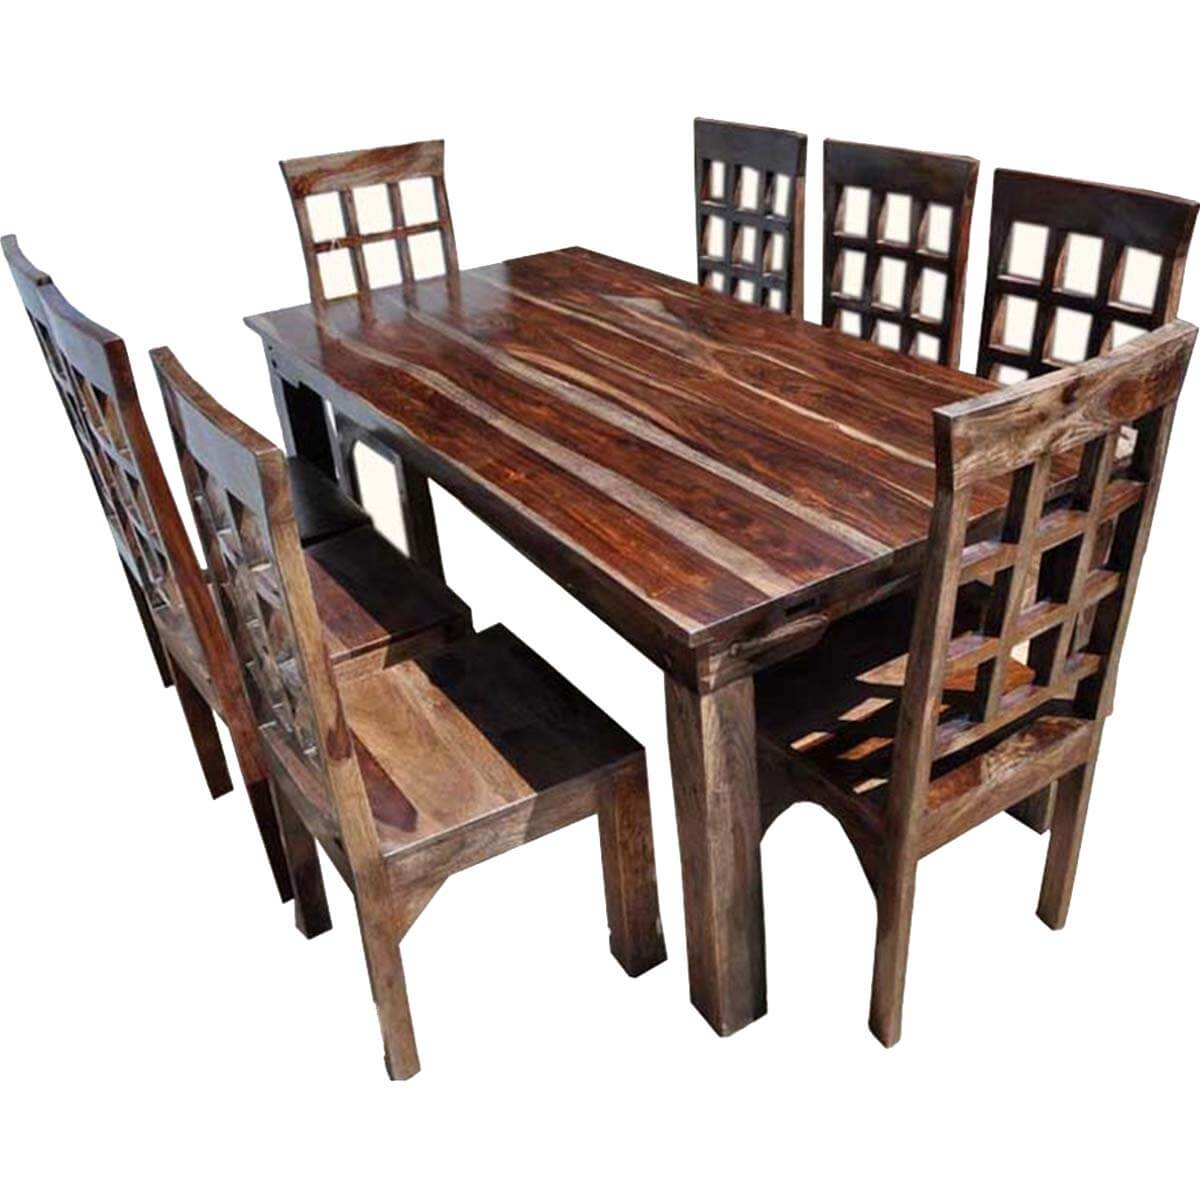 Dining Chairs Set Farmhouse Solid Wood Dining Table Chairs And Sideboard Set